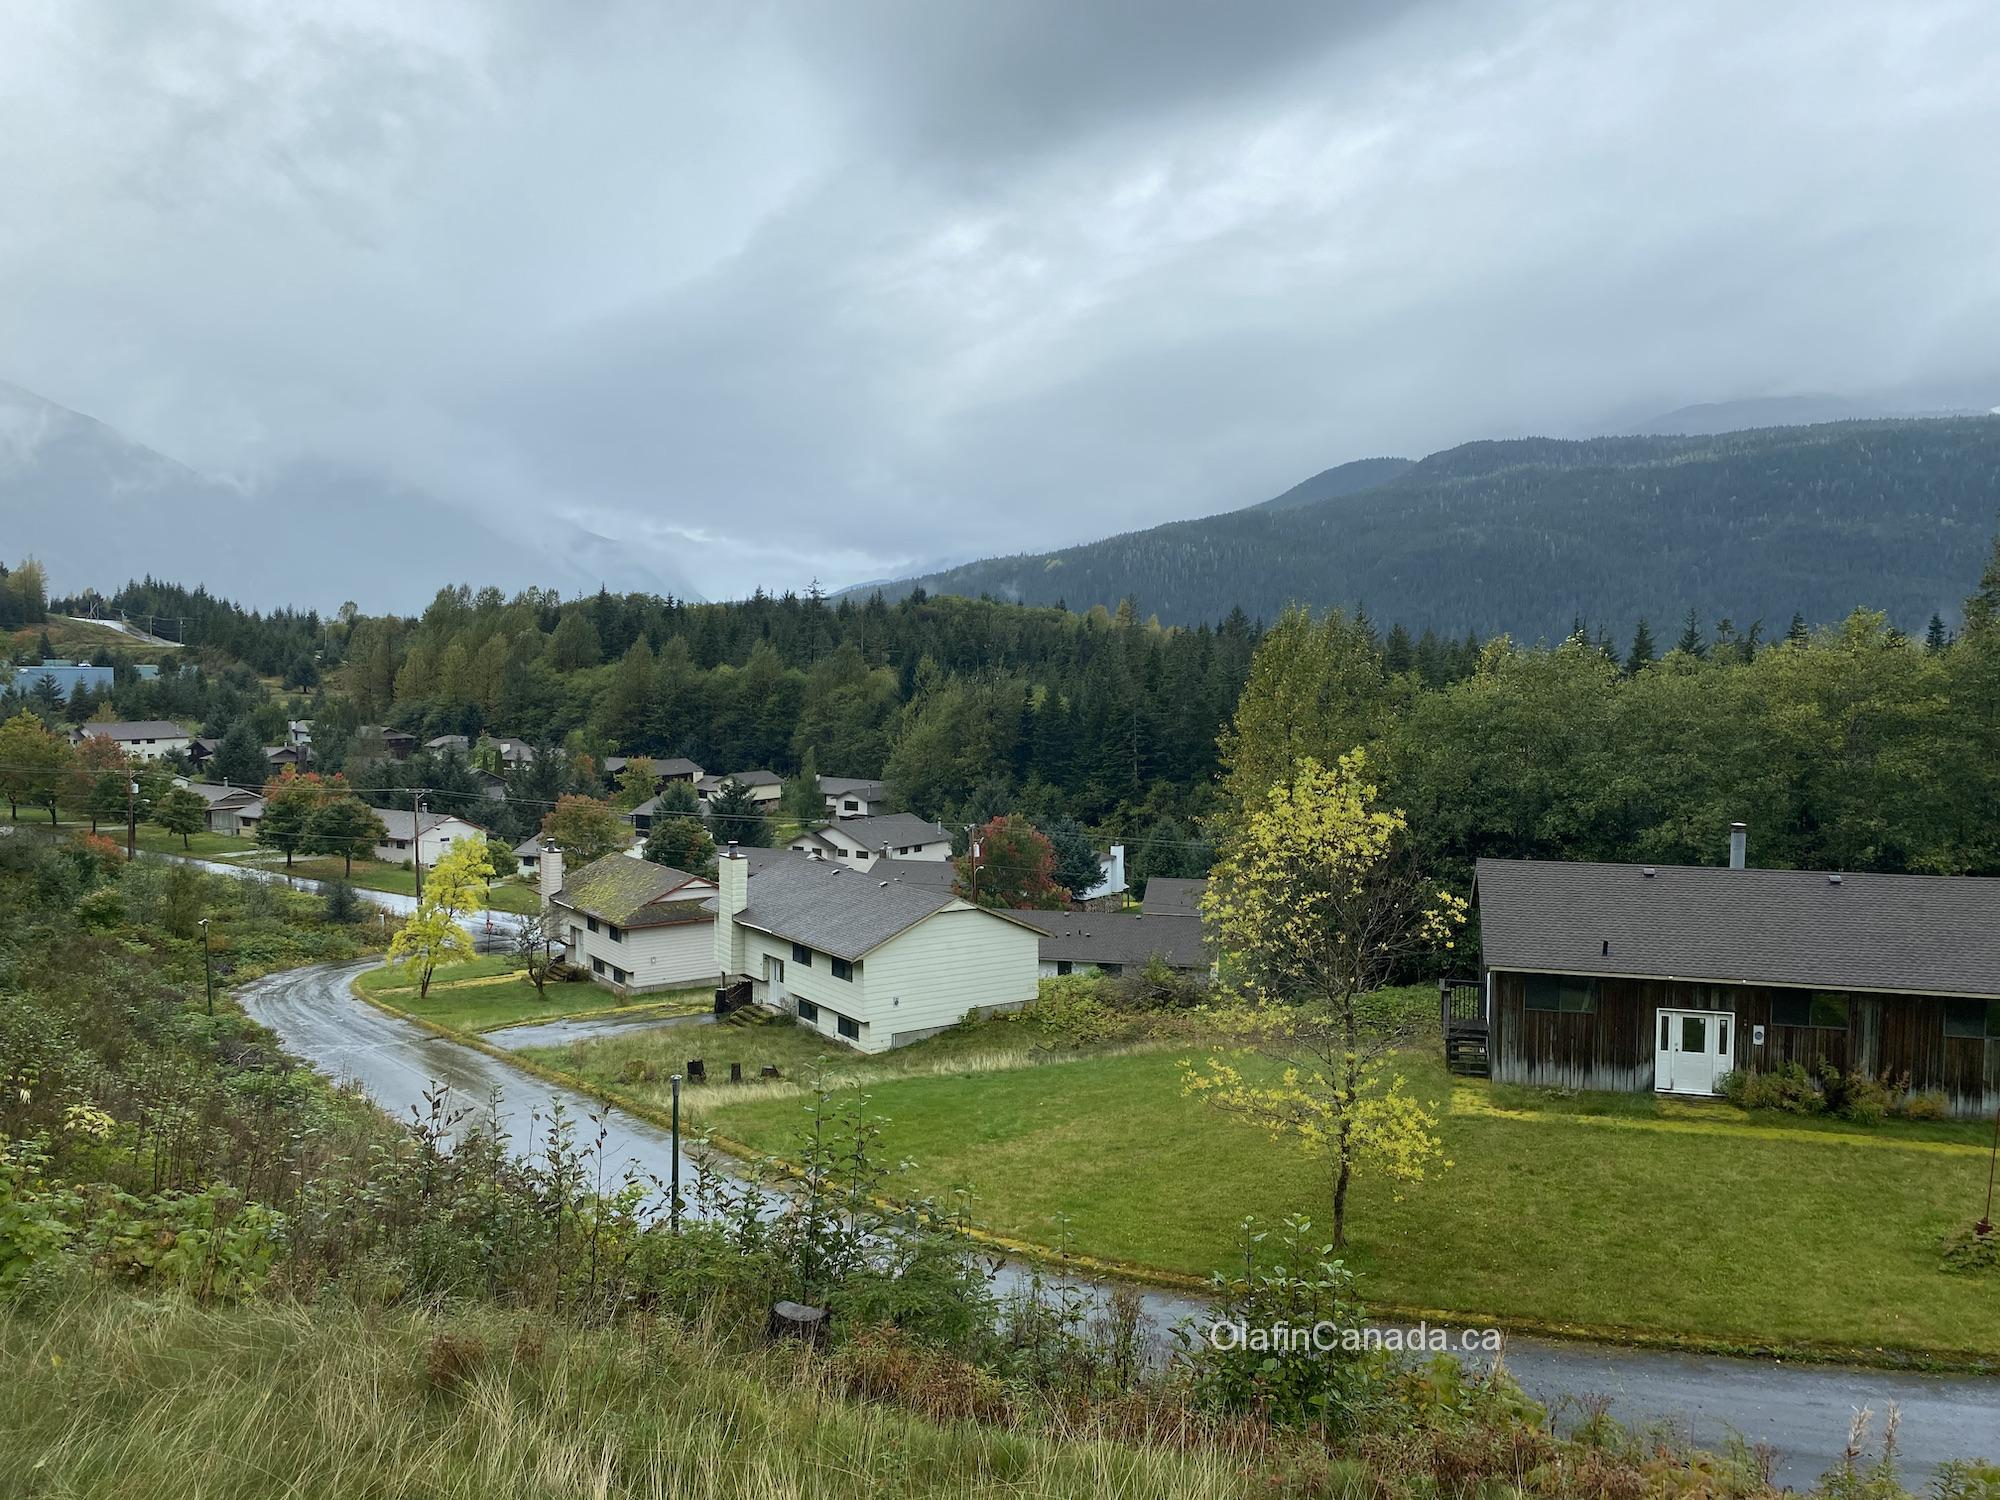 View from the guest house overlooking Kitsault #olafincanada #britishcolumbia #discoverbc #abandonedbc #kitsault